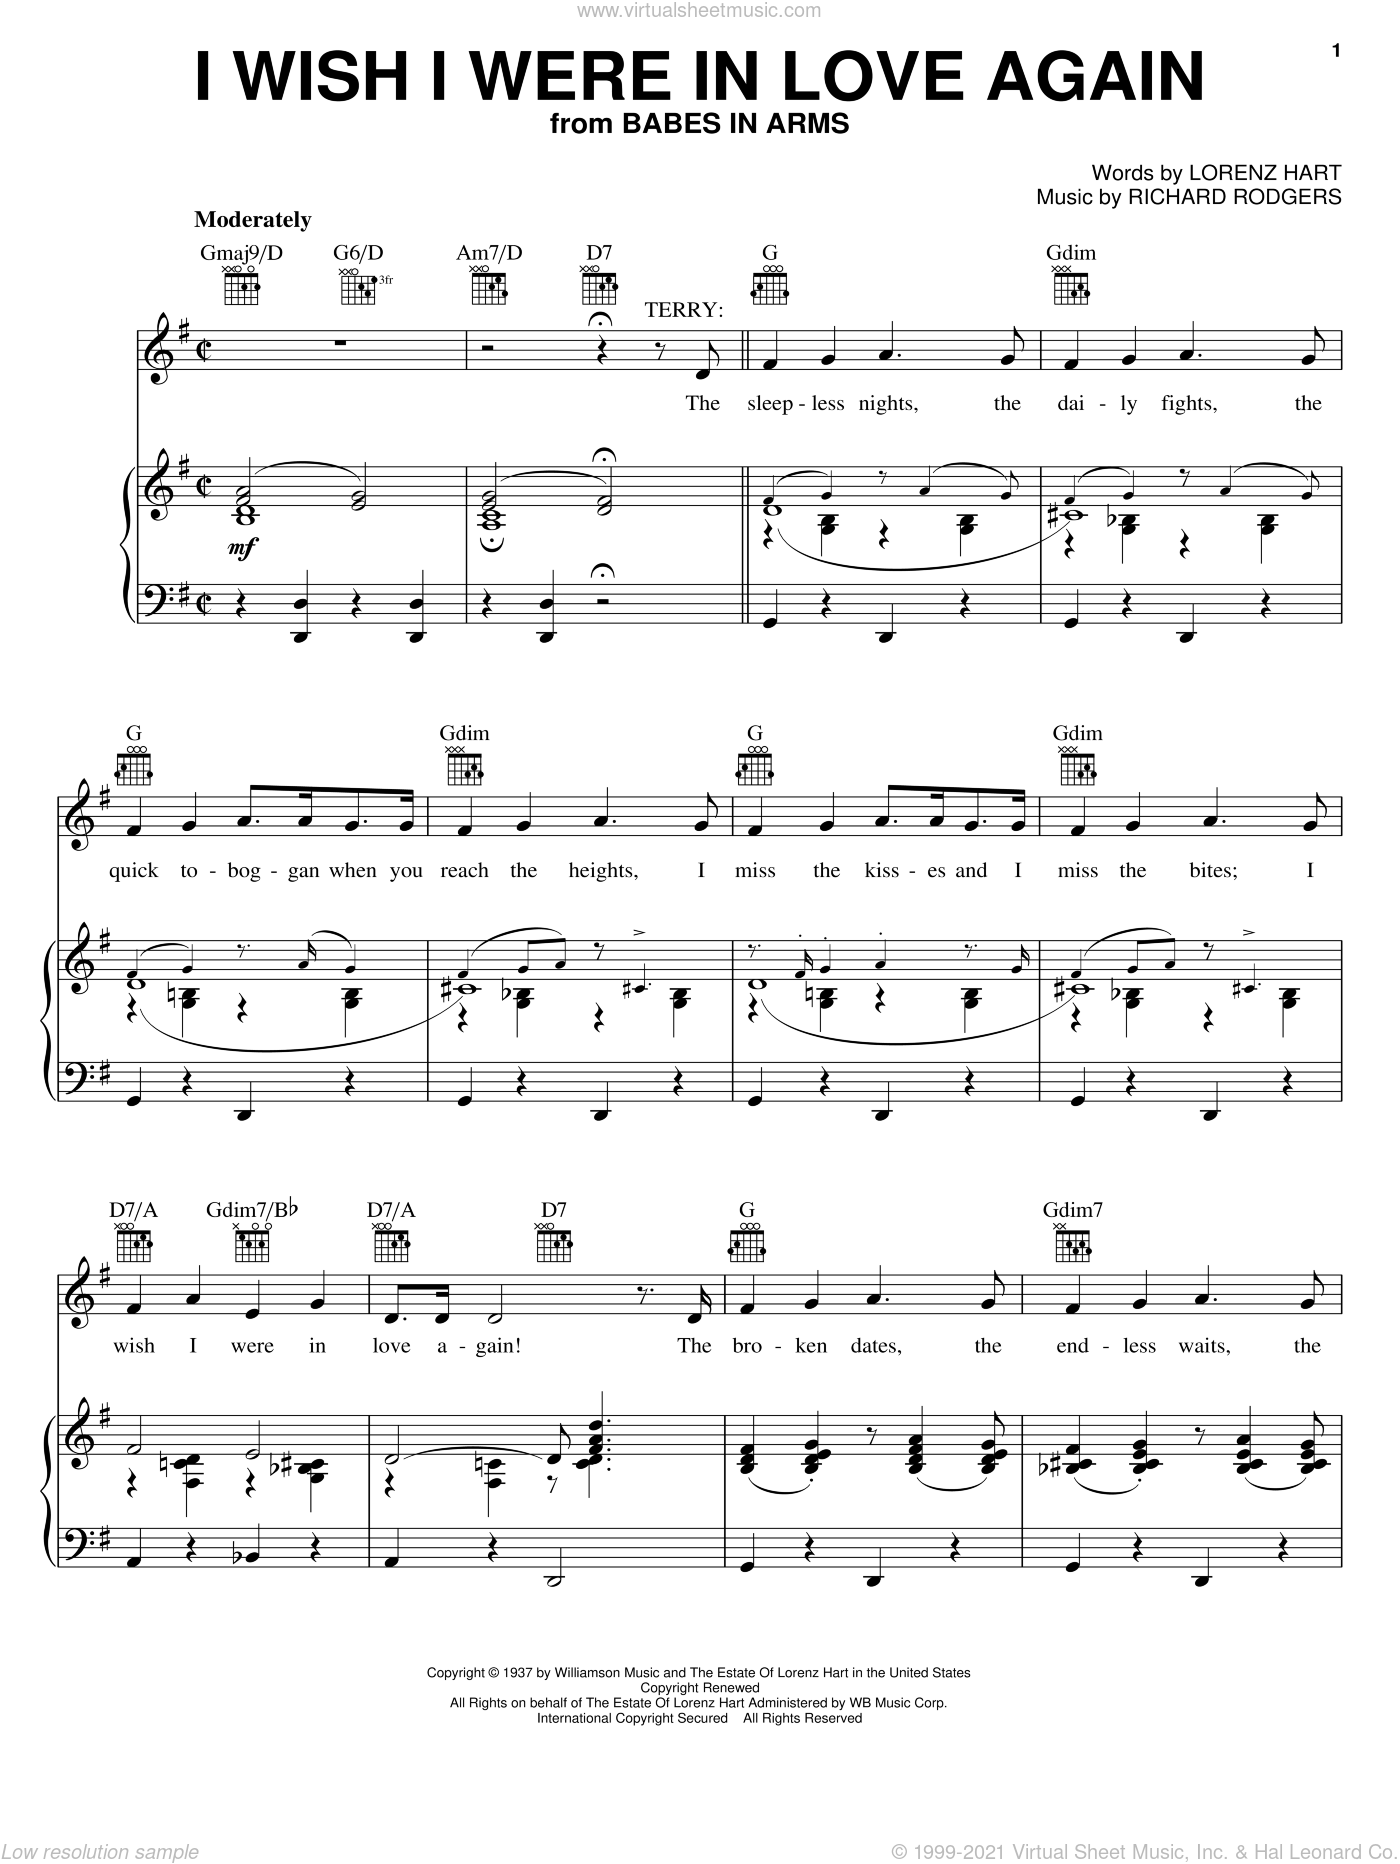 I Wish I Were In Love Again sheet music for voice, piano or guitar by Rodgers & Hart, Babes In Arms (Musical), Lorenz Hart and Richard Rodgers, intermediate skill level